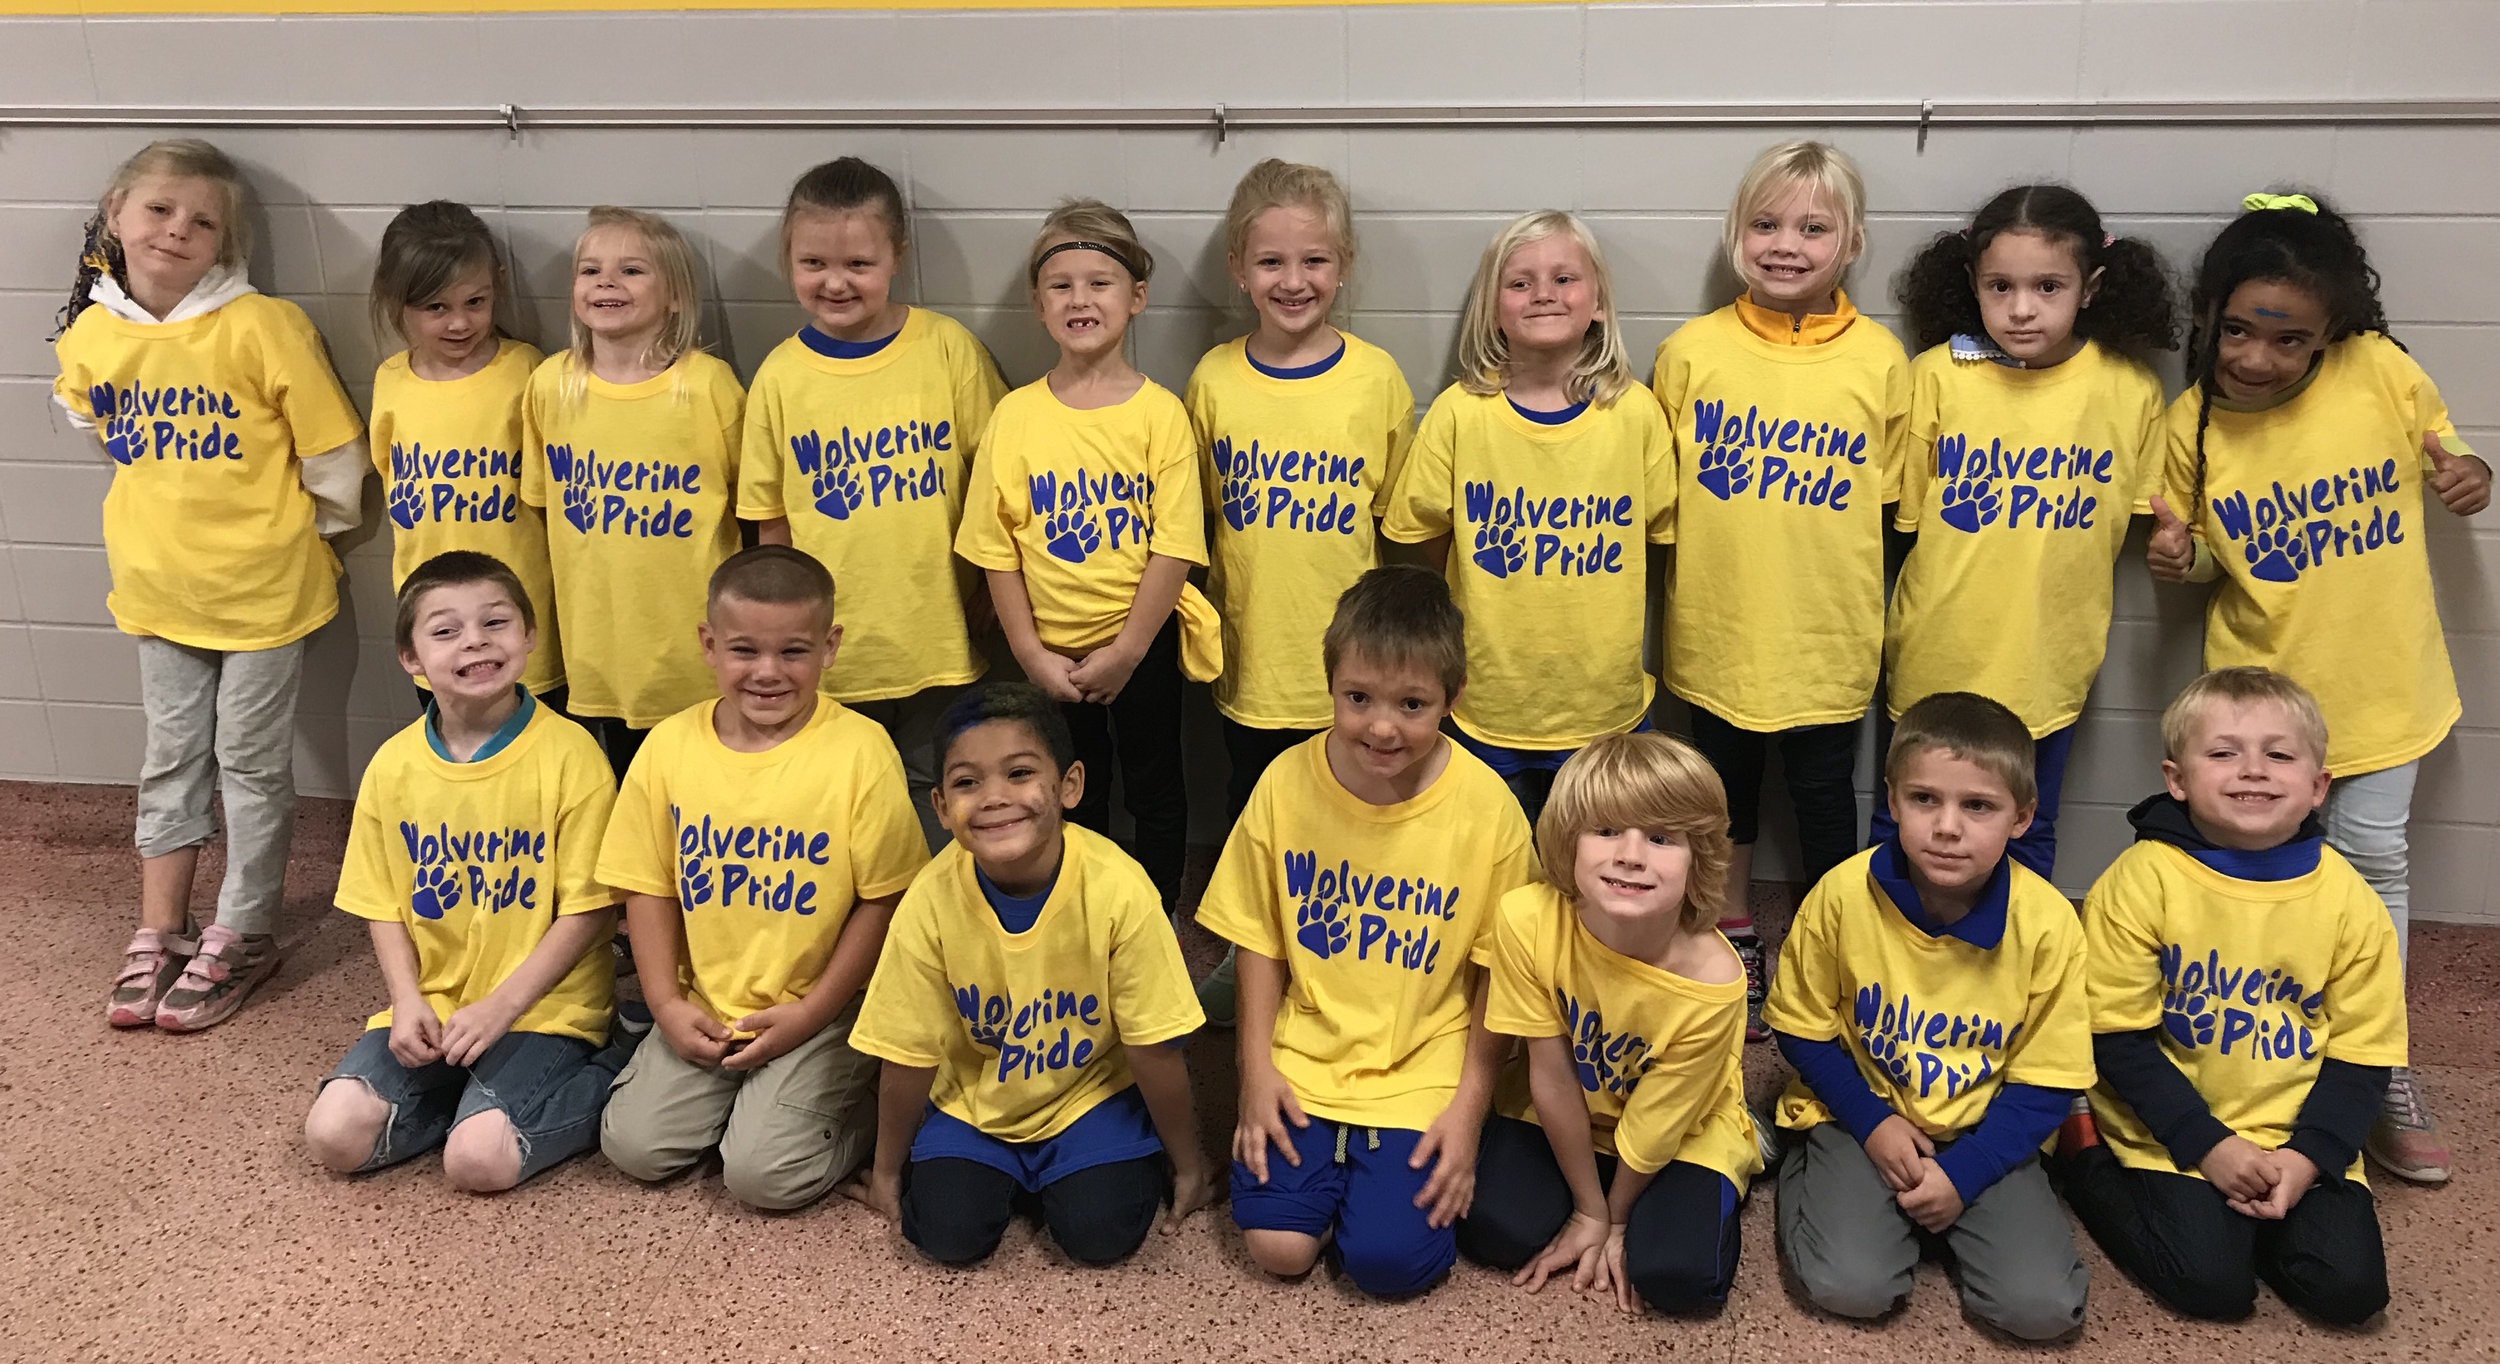 Mrs. Morlock's kindergarteners proudly show off their Wolverine Pride T-shirts!